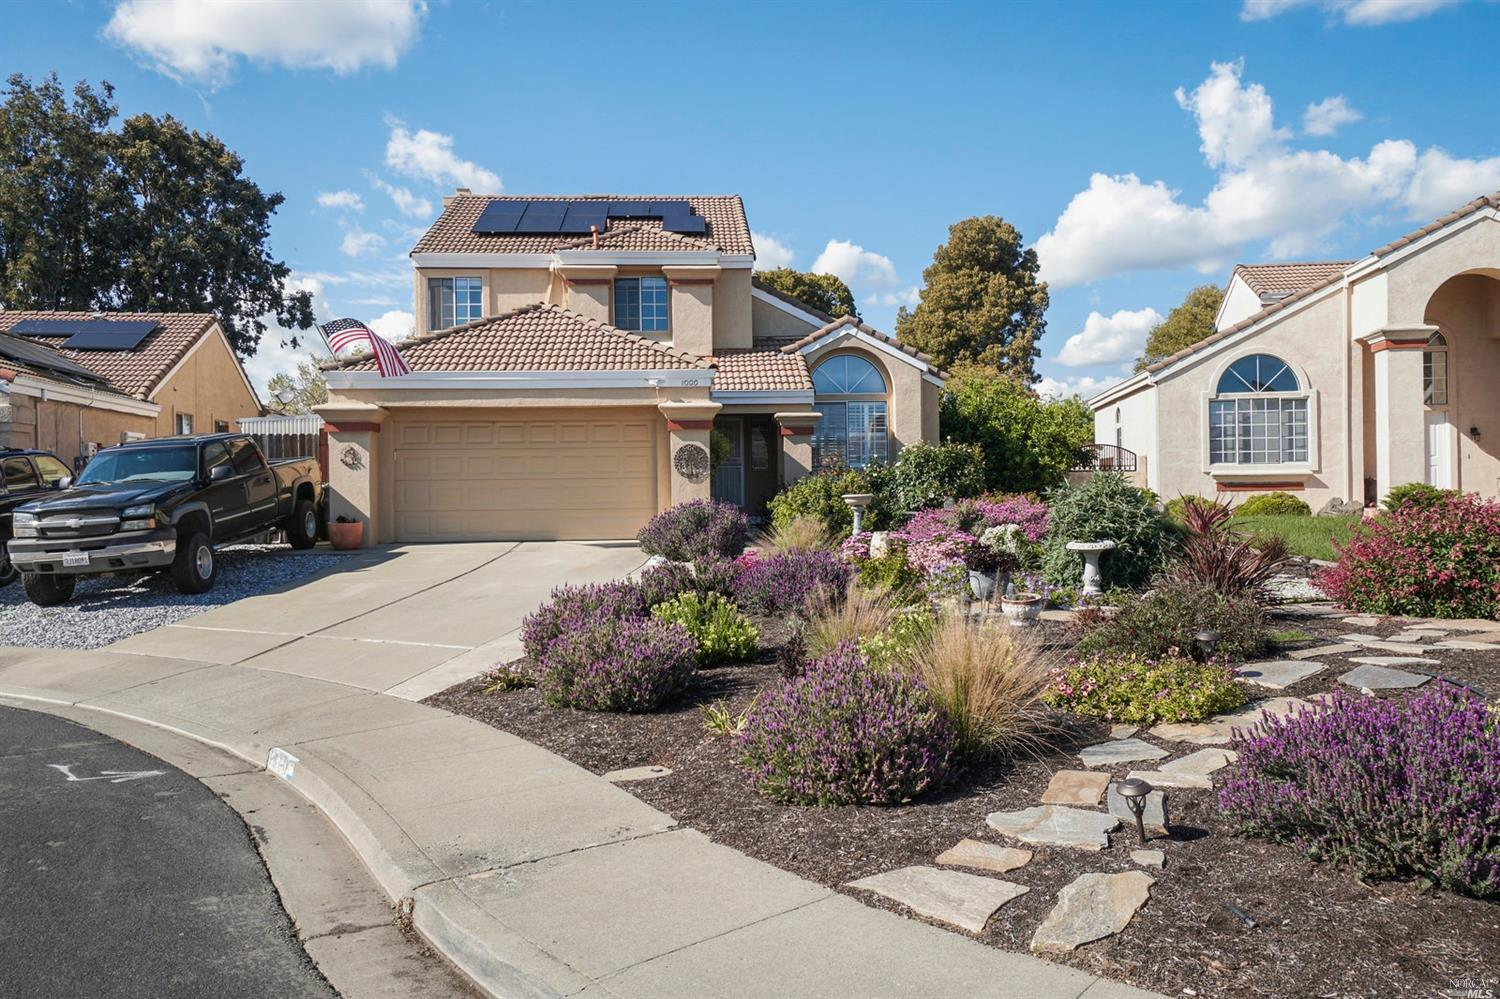 Curb appeal is the first thing you notice about this home! Large drought tolerant front yard with be